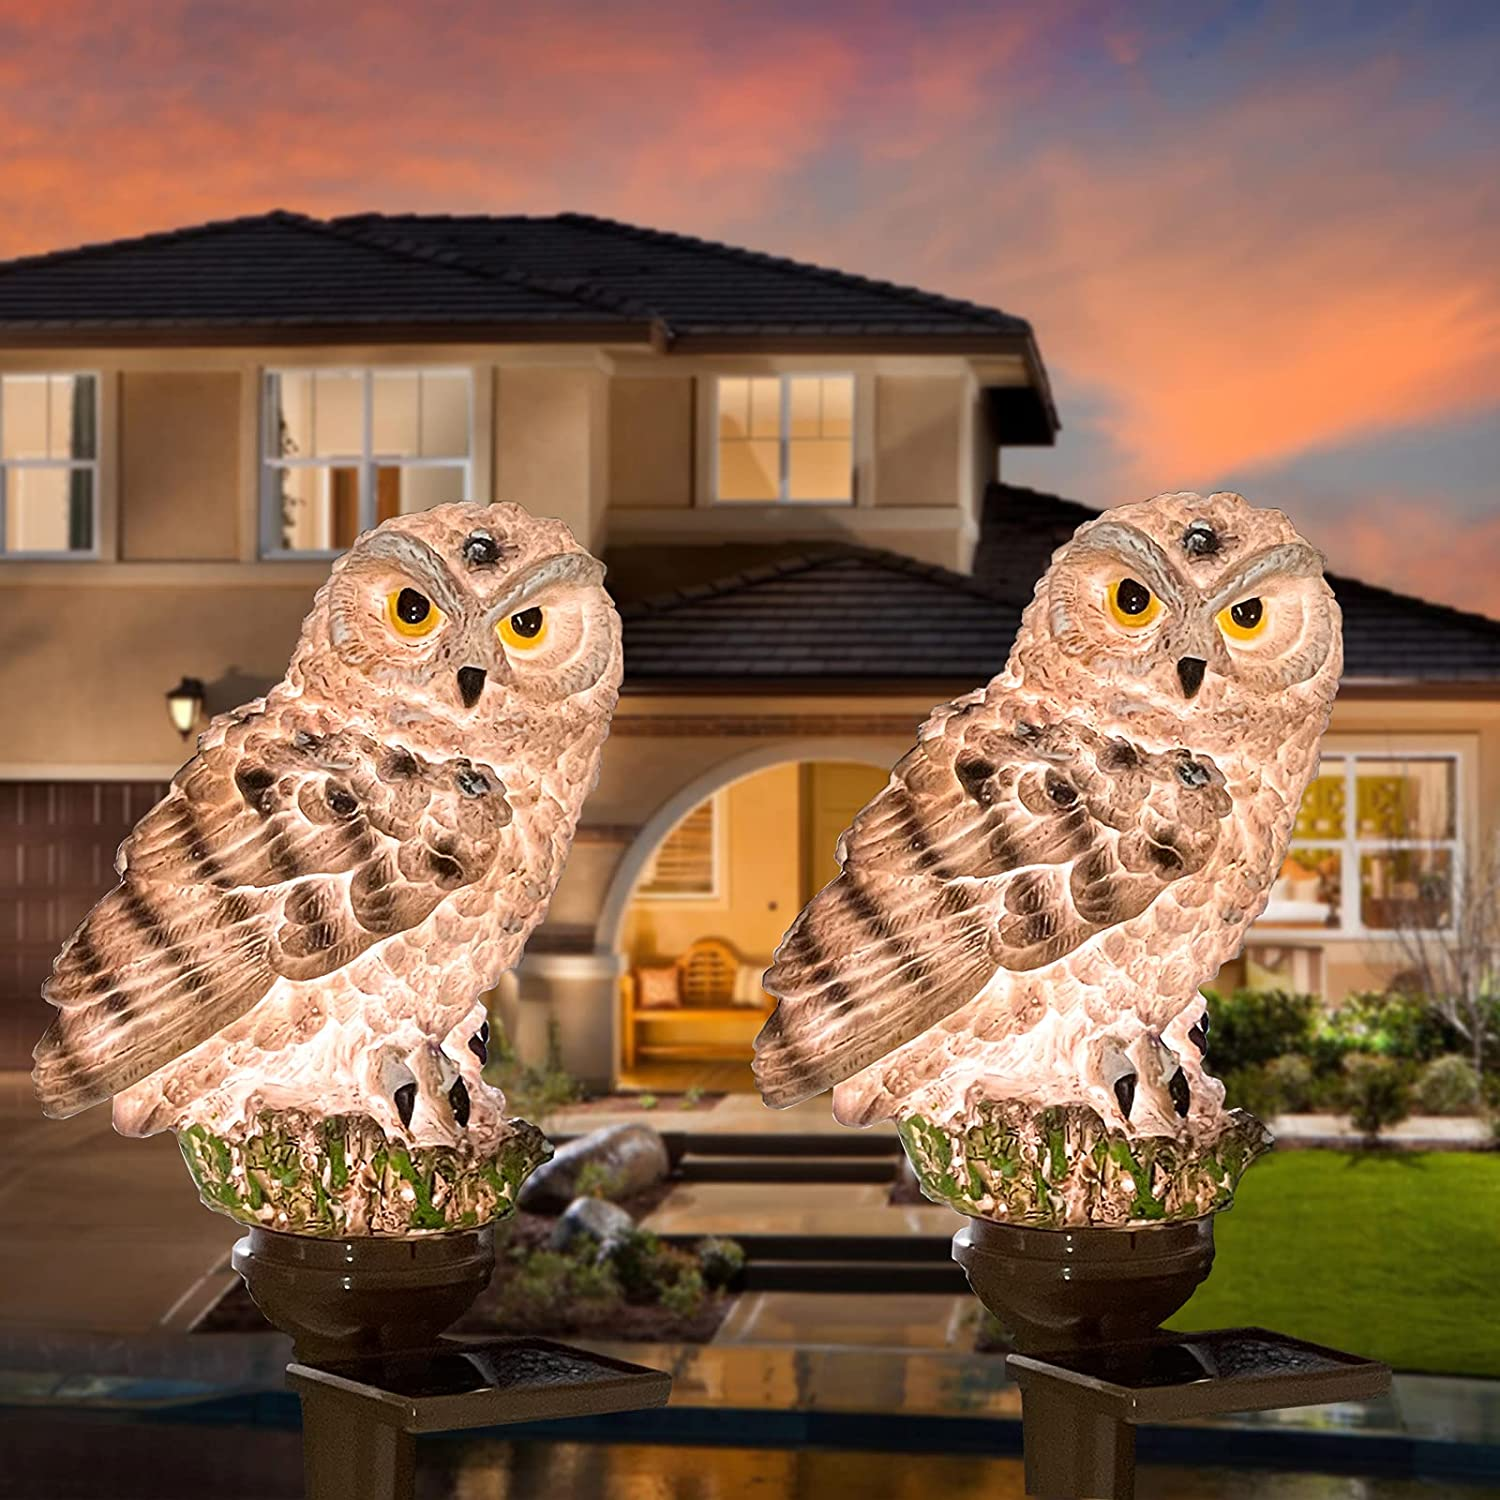 YESHAN Solar Figurine Light, 2 Pack Owl Solar Lights with Stake,Cute Owl Led Lights for Lawn Yard Patio Pathway Decor (Brown)…